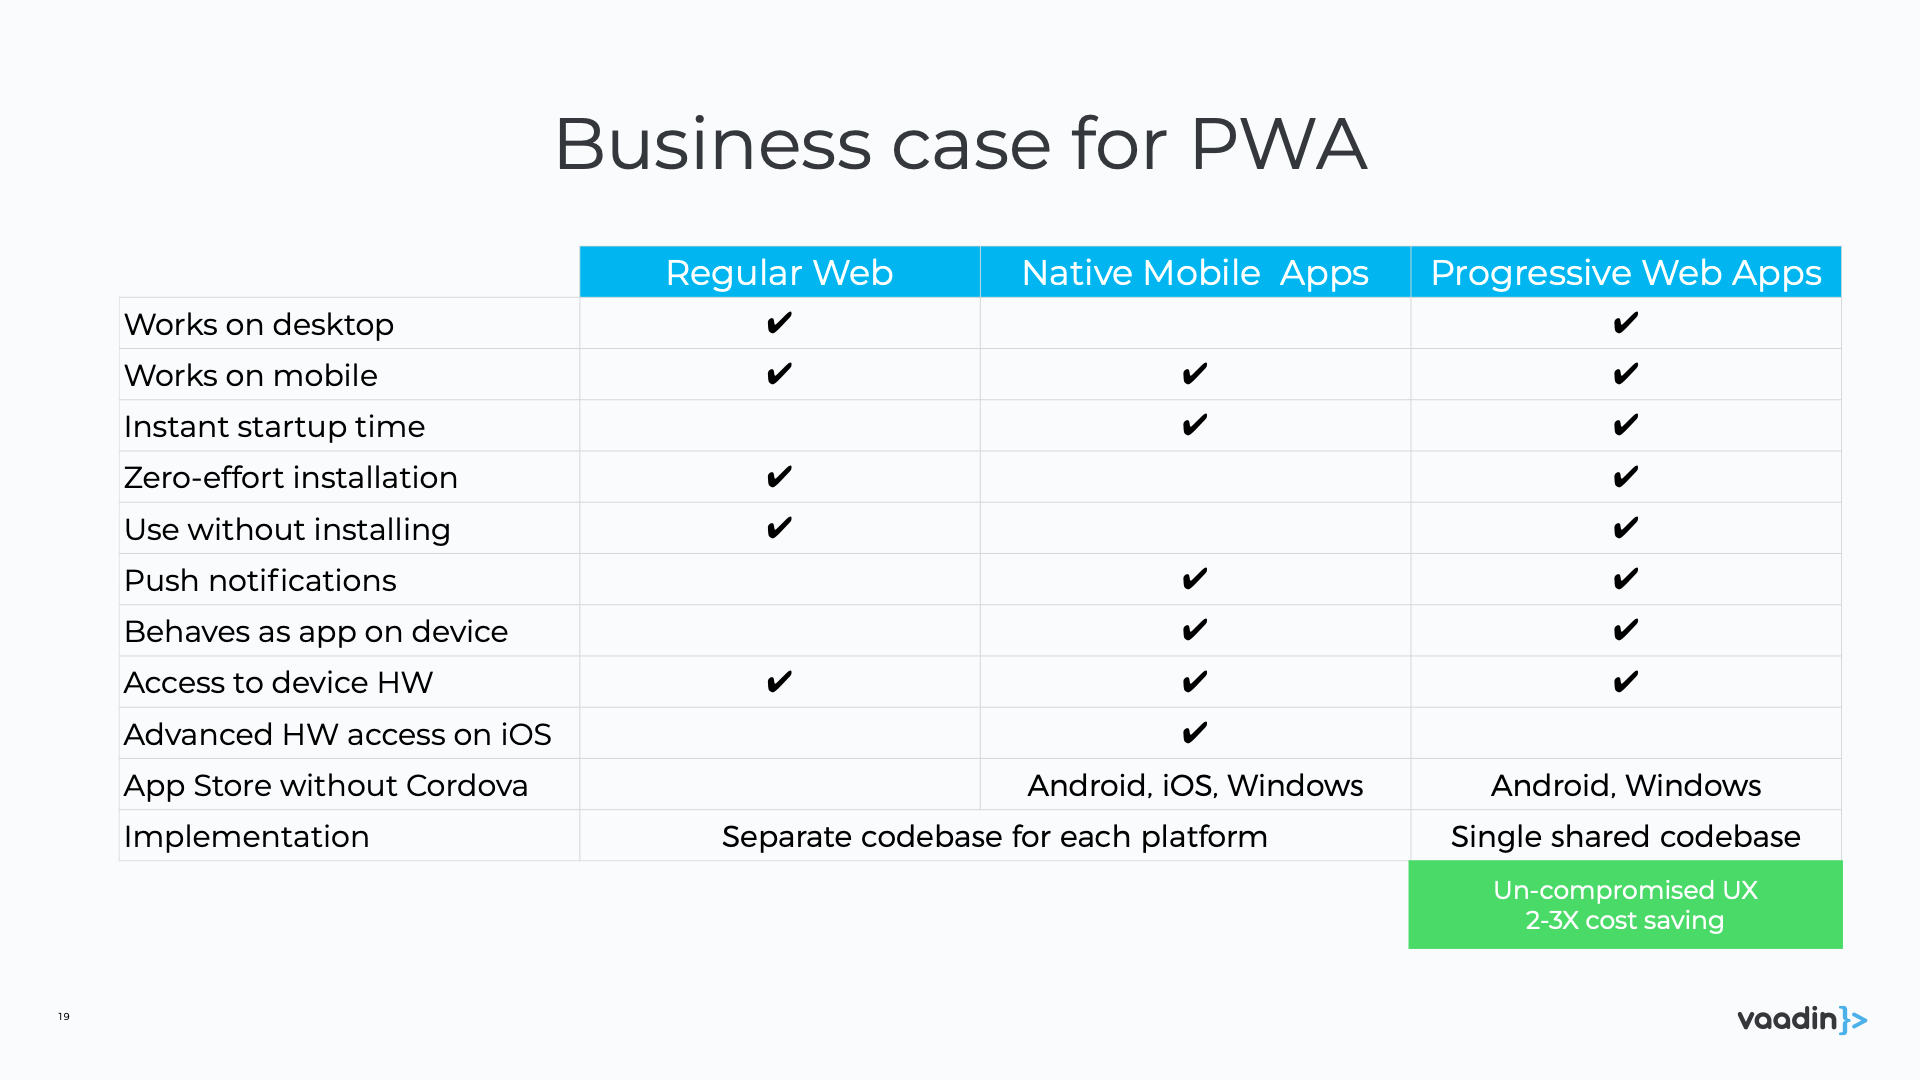 Business case for PWA